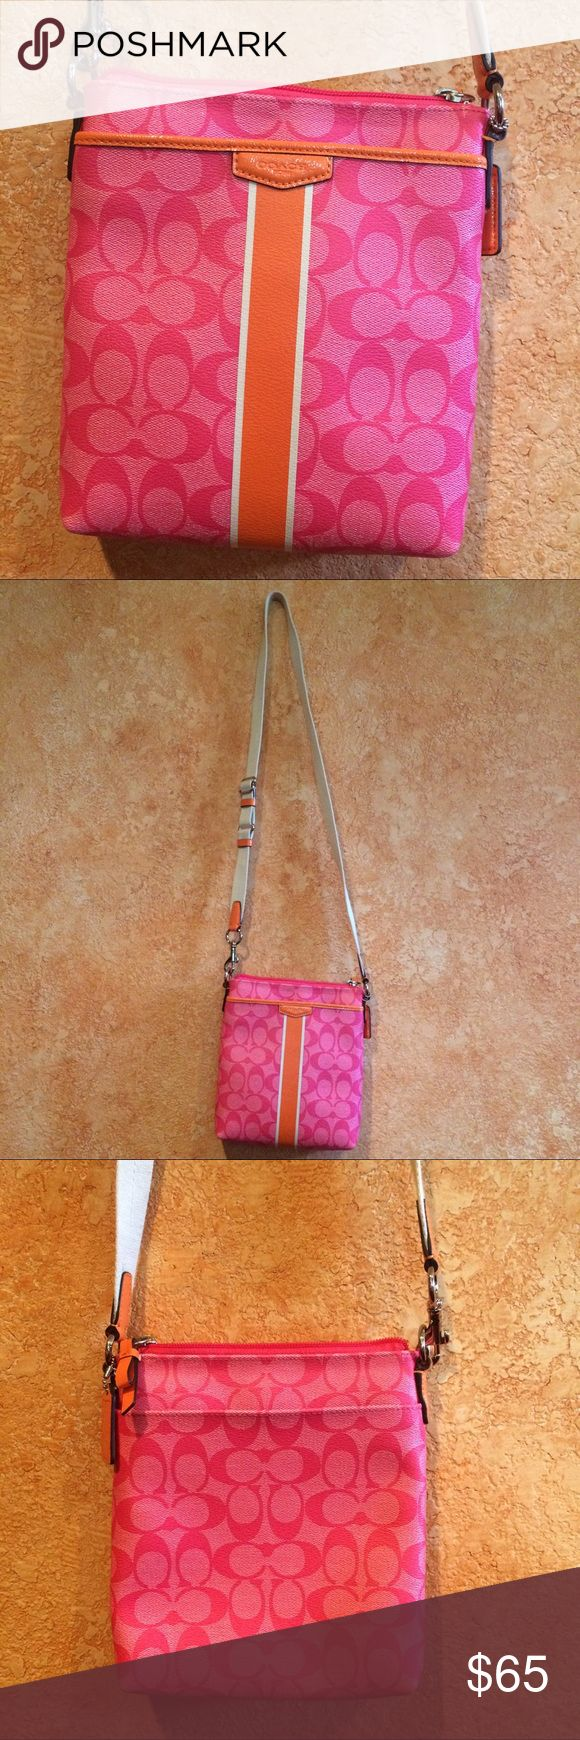 Coach Swingpack crossbody pink handbag Authentic Coach crossbody swingpack, pink and orange, adjustable strap, tan strap, interior has one side pocket, two outside pockets, there is a tiny spot on the bottom of the strap shown in the last picture but other than that it's in great condition. Coach Bags Crossbody Bags